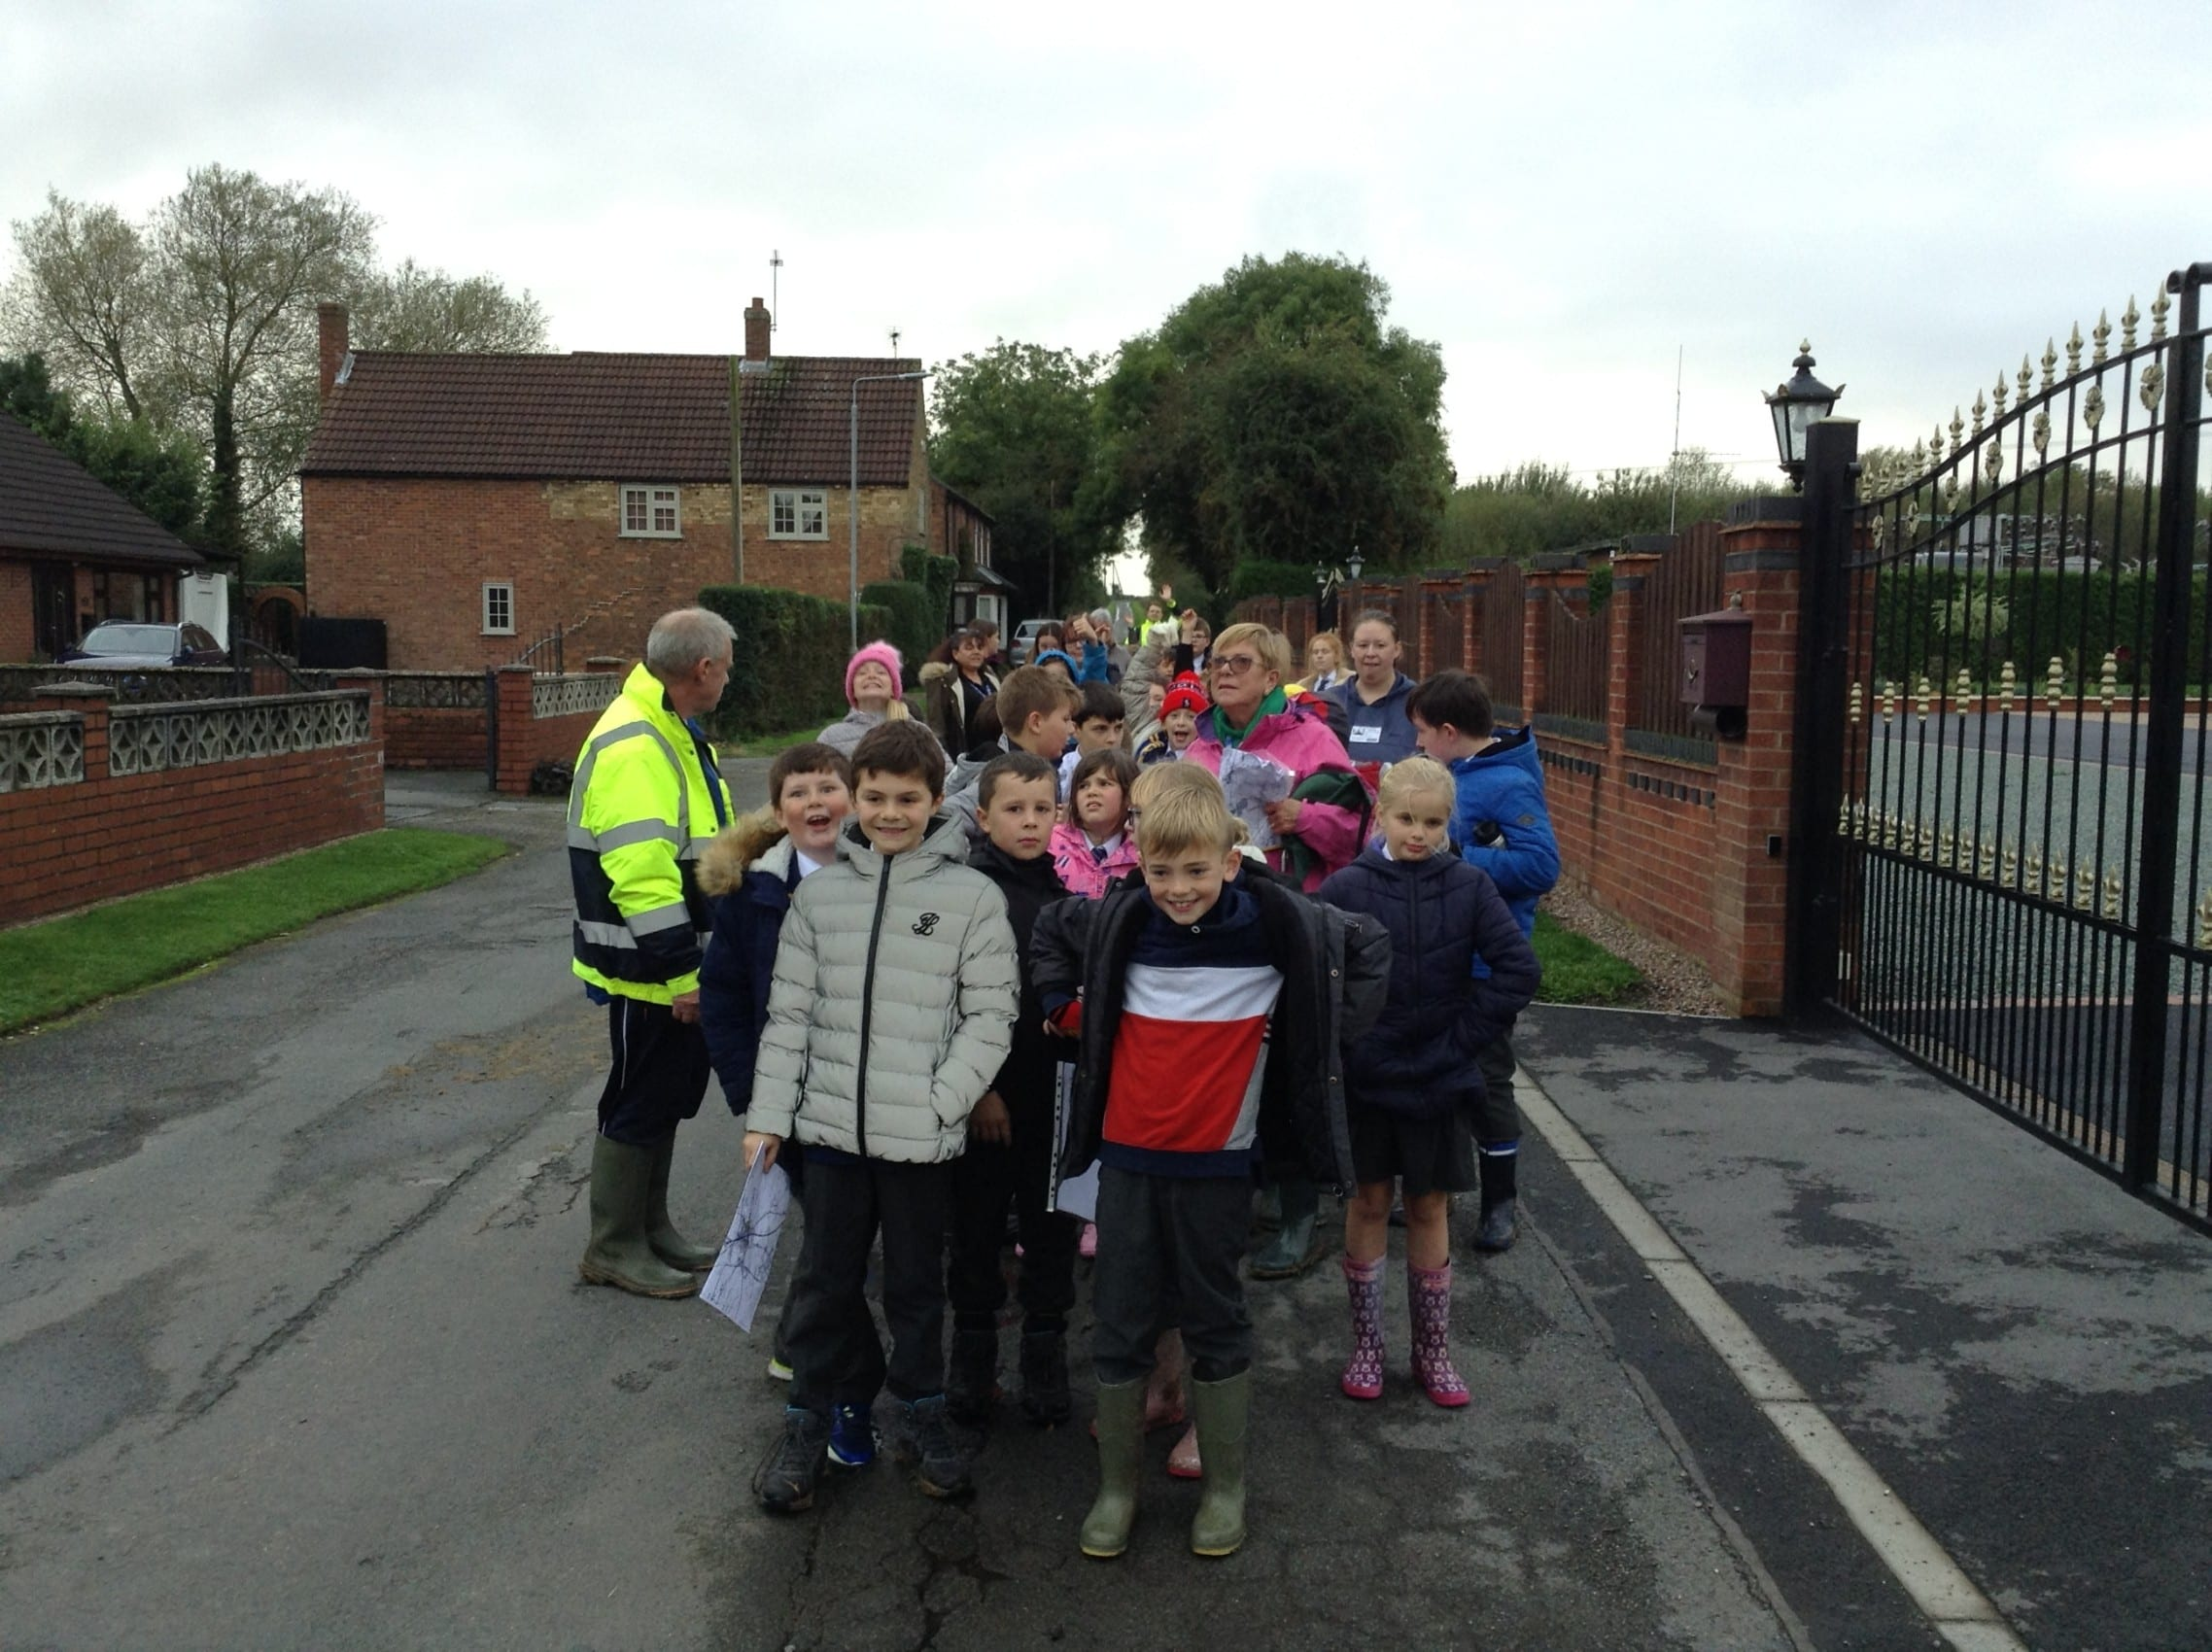 Year 5 intrepid explorers take a muddy autumnal walk around Tuxford